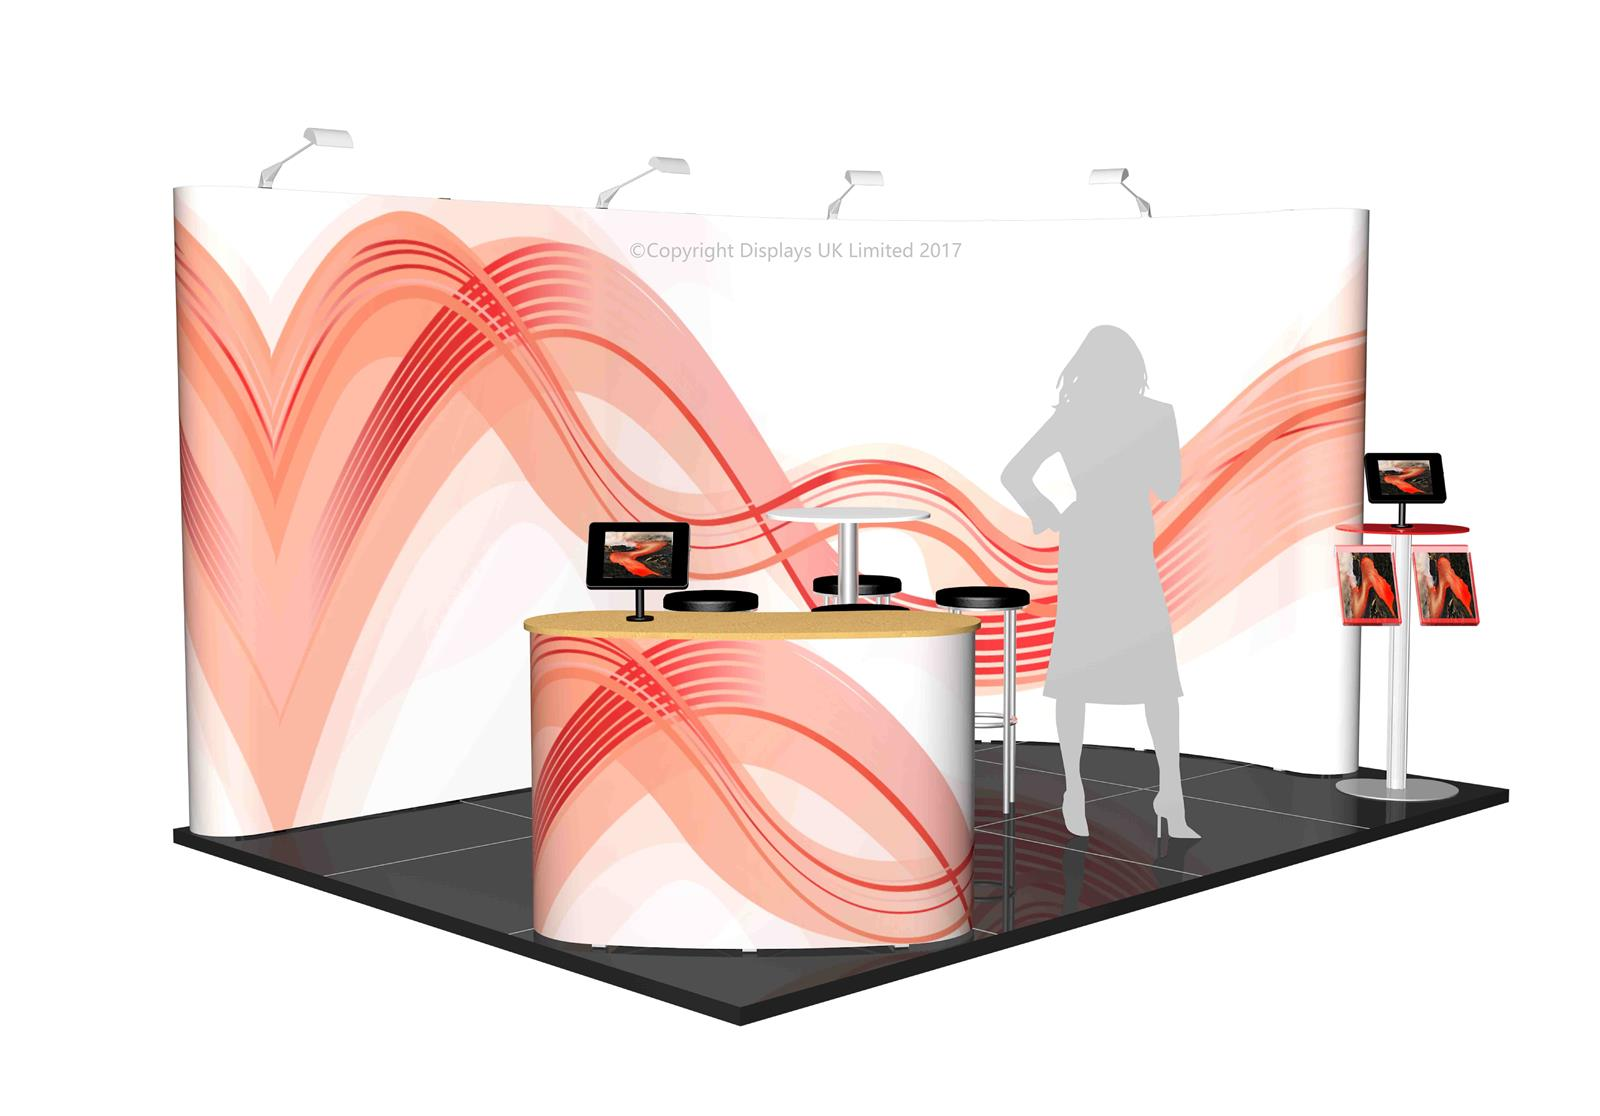 3m x 4m Linked Pop Up Exhibition Stand - Kit 22 - P4x3-2bC